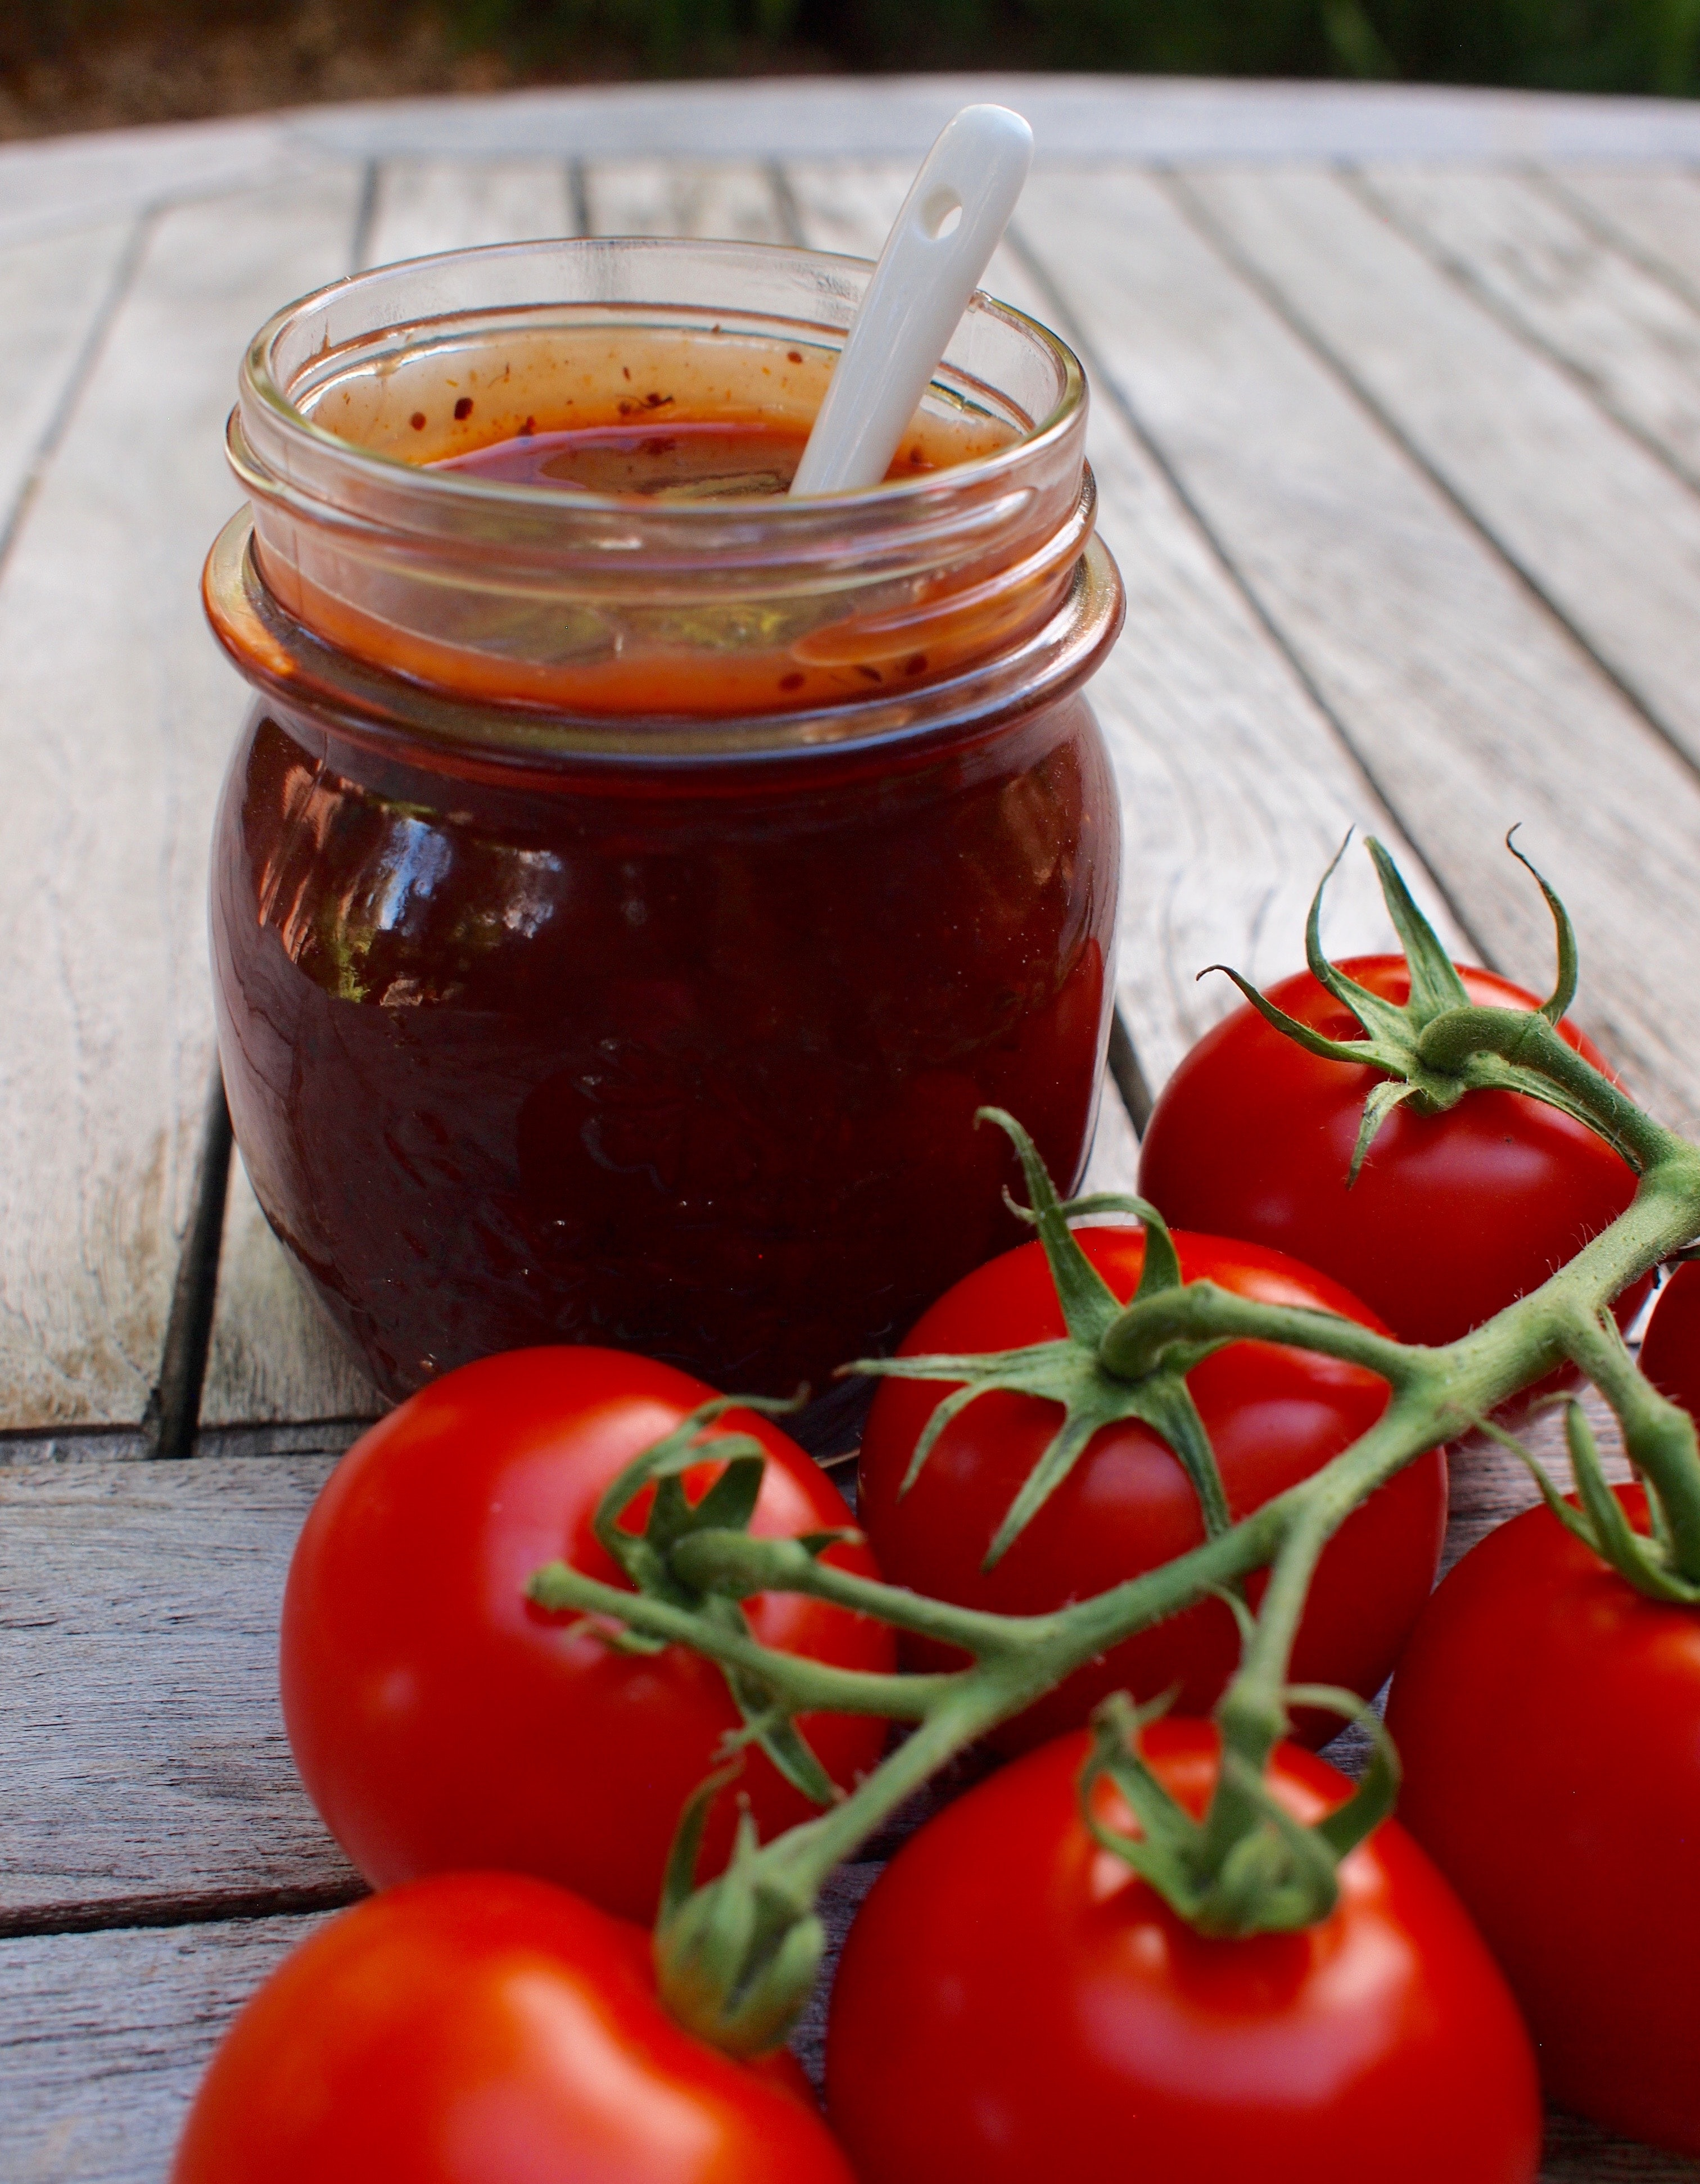 Canned BBQ Sauce and Tomatoes